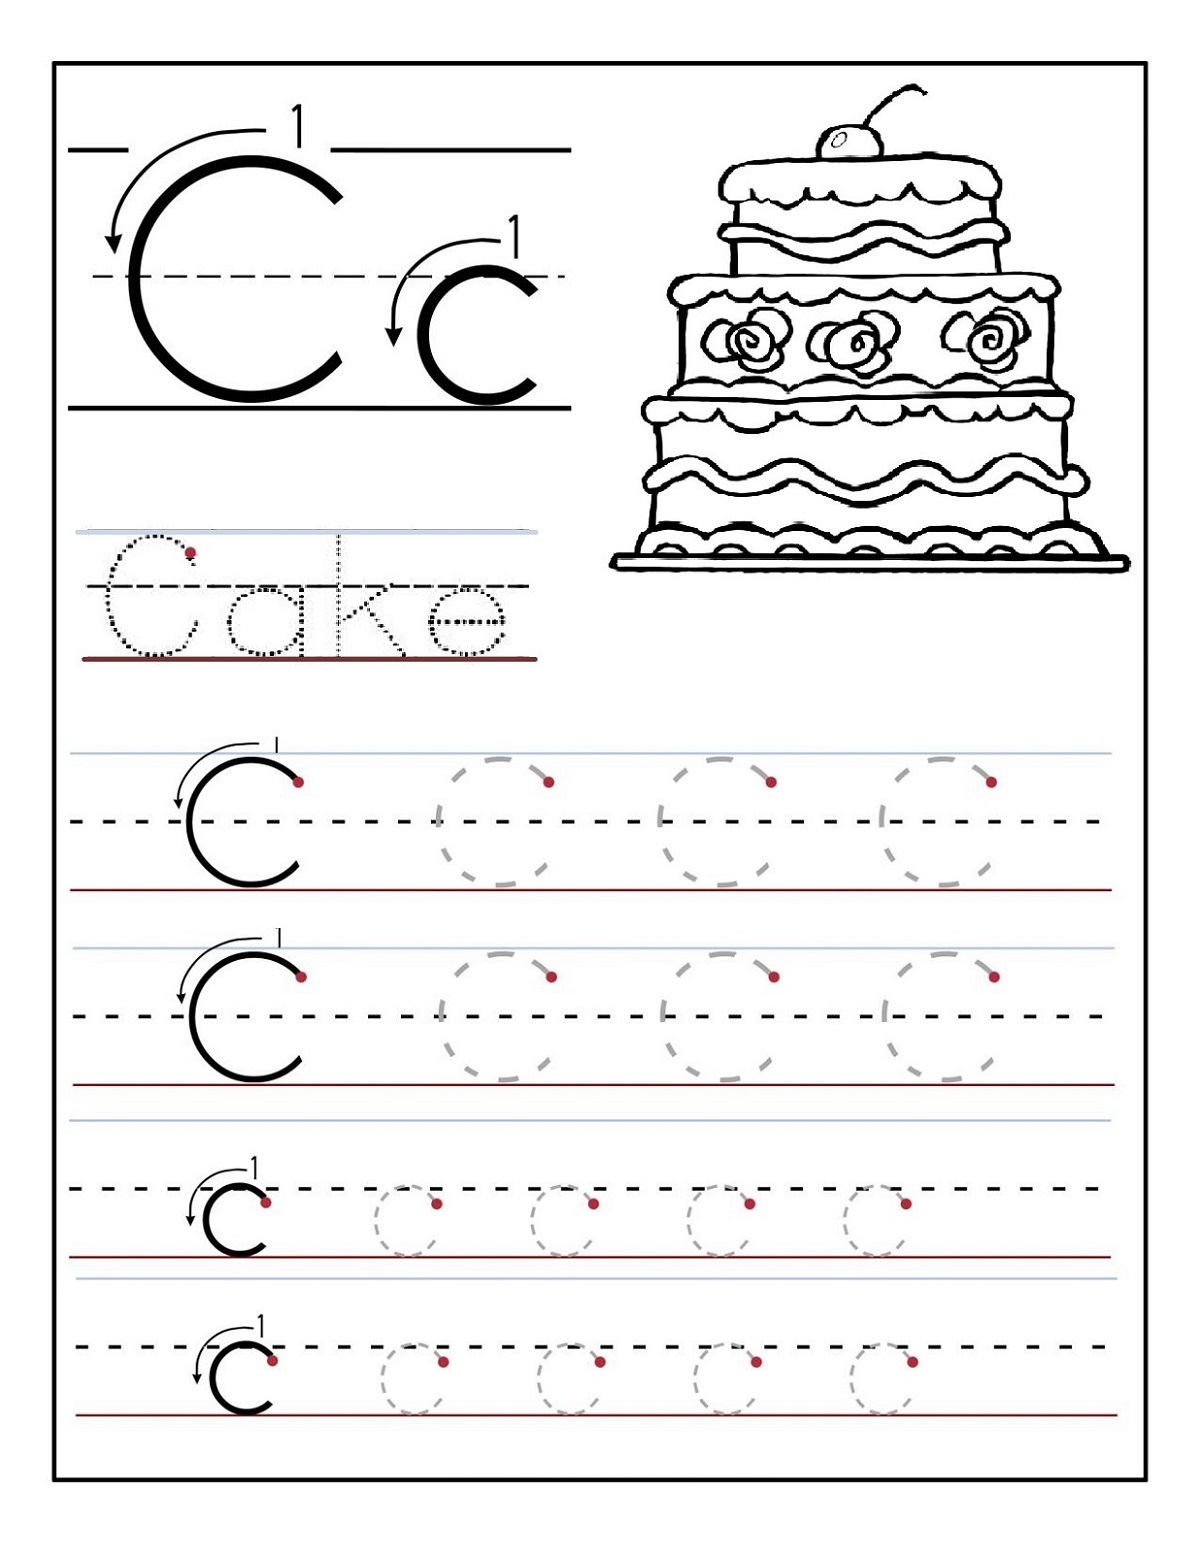 Free preschool worksheets alphabet